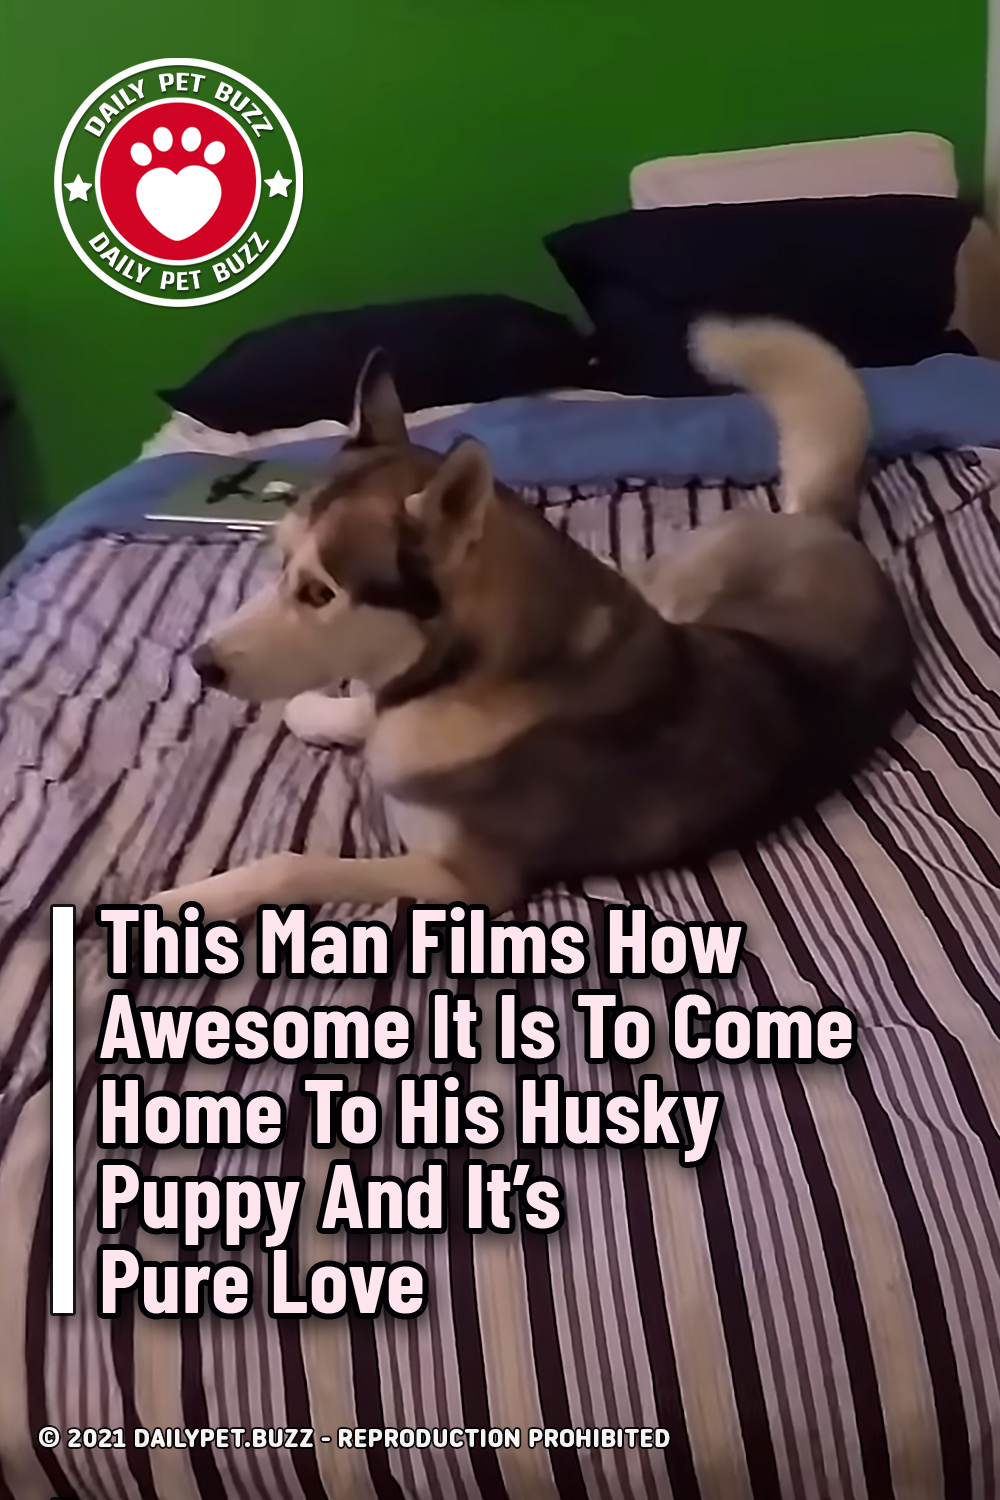 This Man Films How Awesome It Is To Come Home To His Husky Puppy And It\'s Pure Love